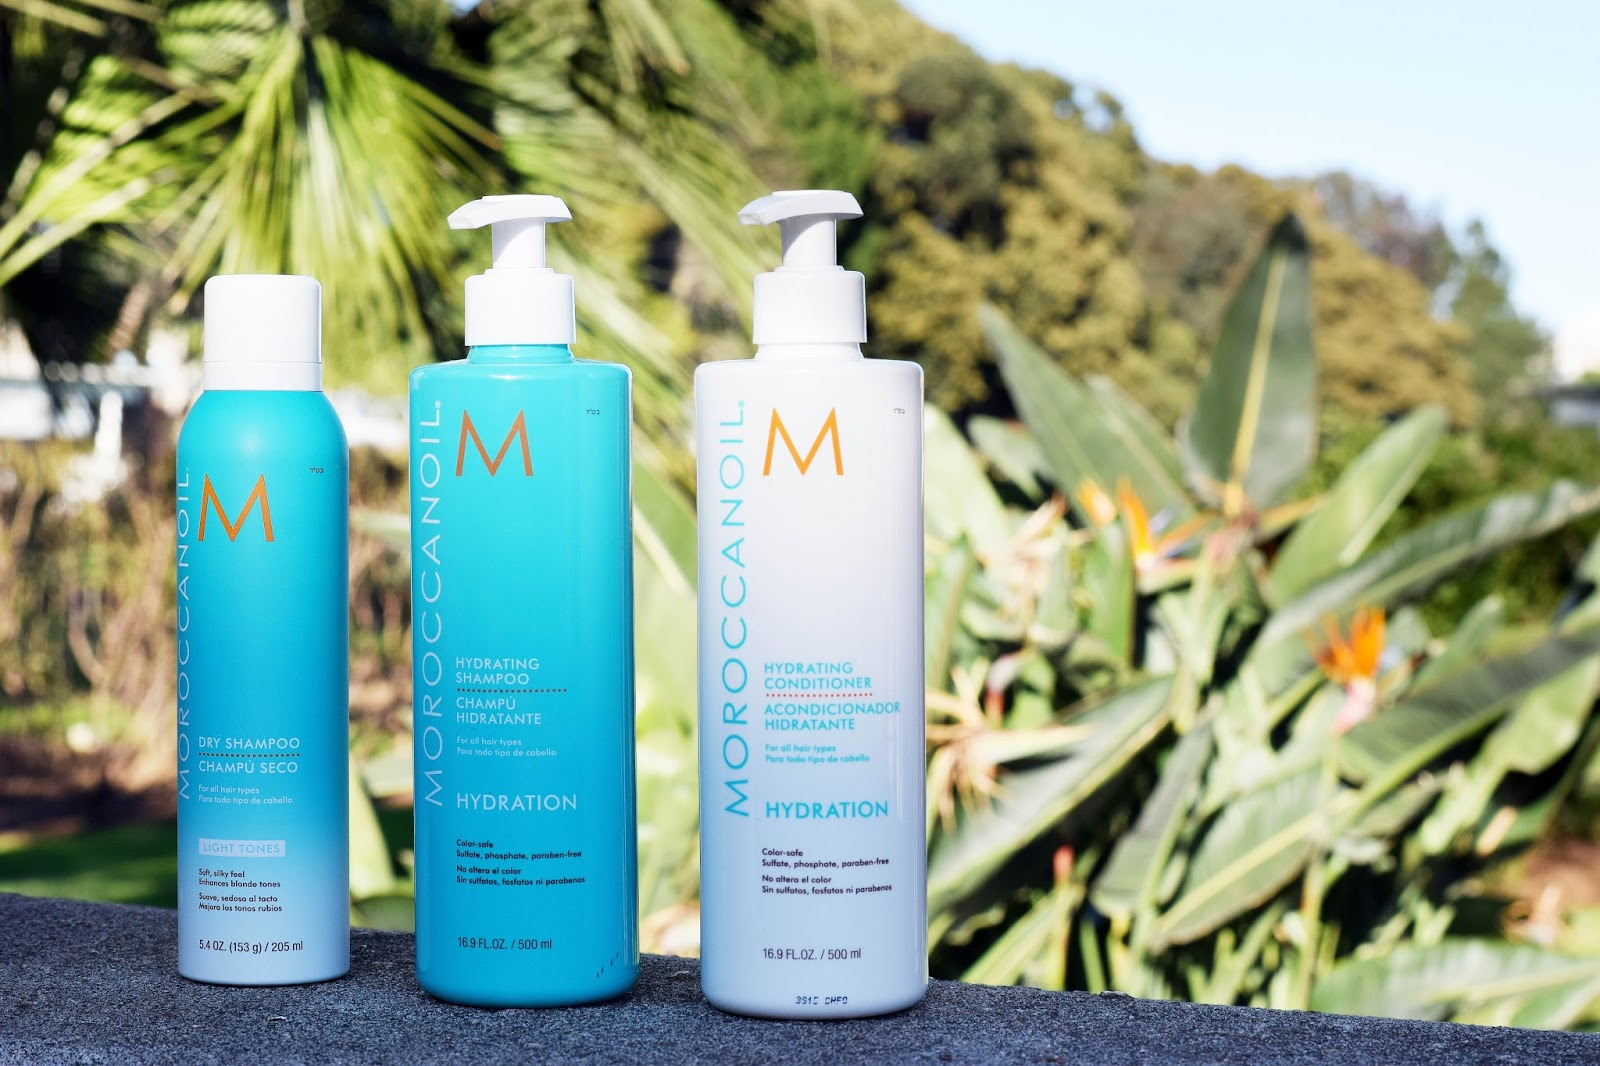 Moroccanoil Treatment, Moroccanoil, hair care, maroccanoil review